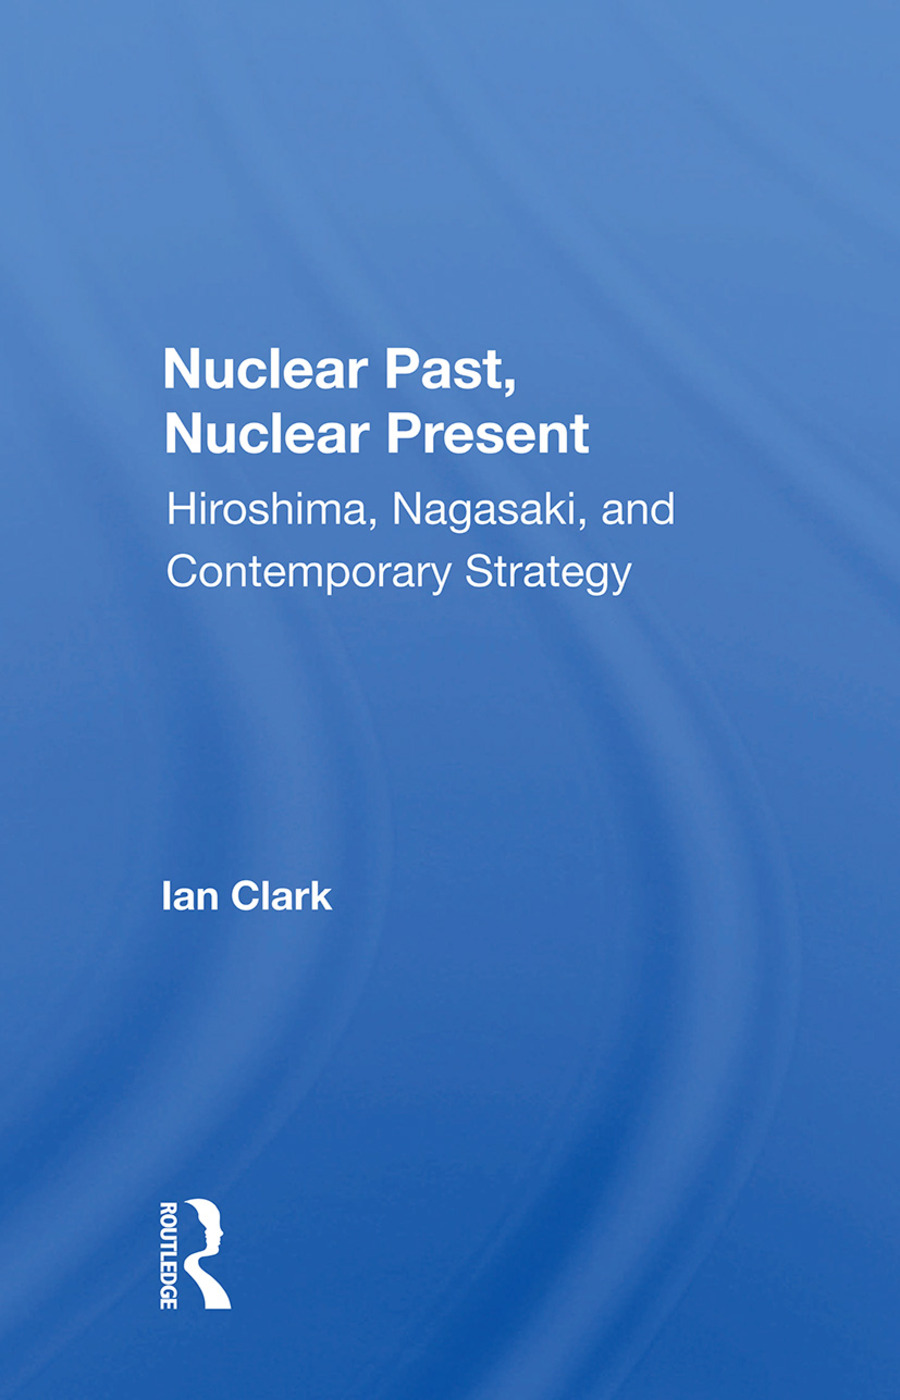 Nuclear Past, Nuclear Present: Hiroshima, Nagasaki, And Contemporary Strategy, 1st Edition (Hardback) book cover